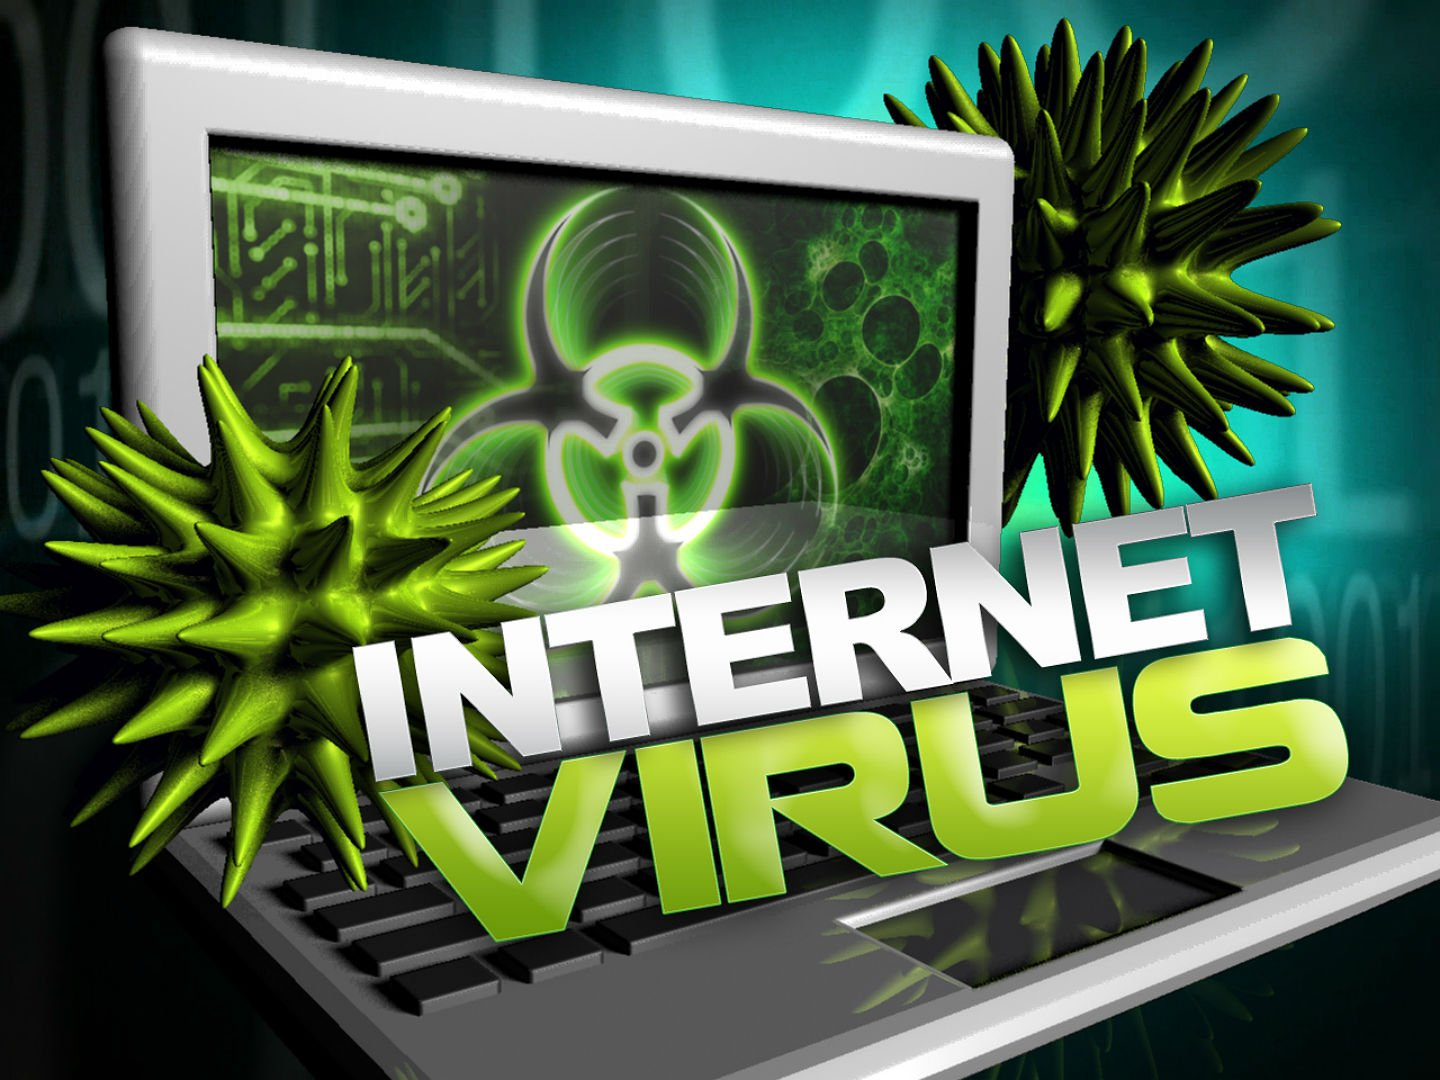 computer-virus-danger-hacking-hacker-internet-sadic-60-wallpaper-1